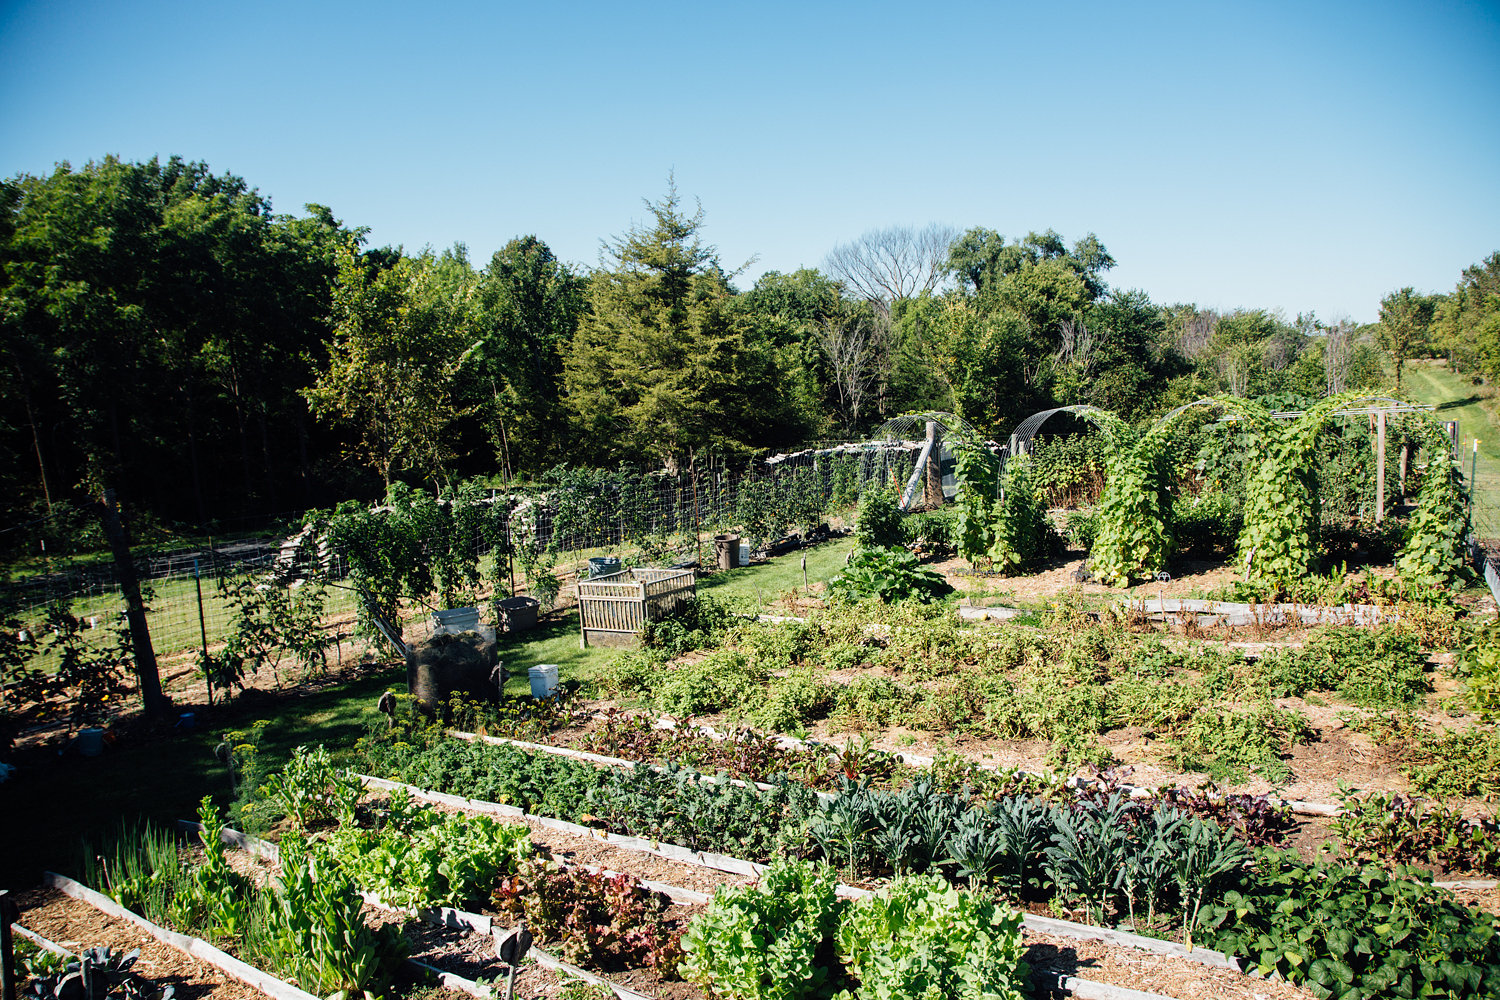 Rows of veggie are surrounded by large trellises of Cucumbers and Squash, and natural mulch.